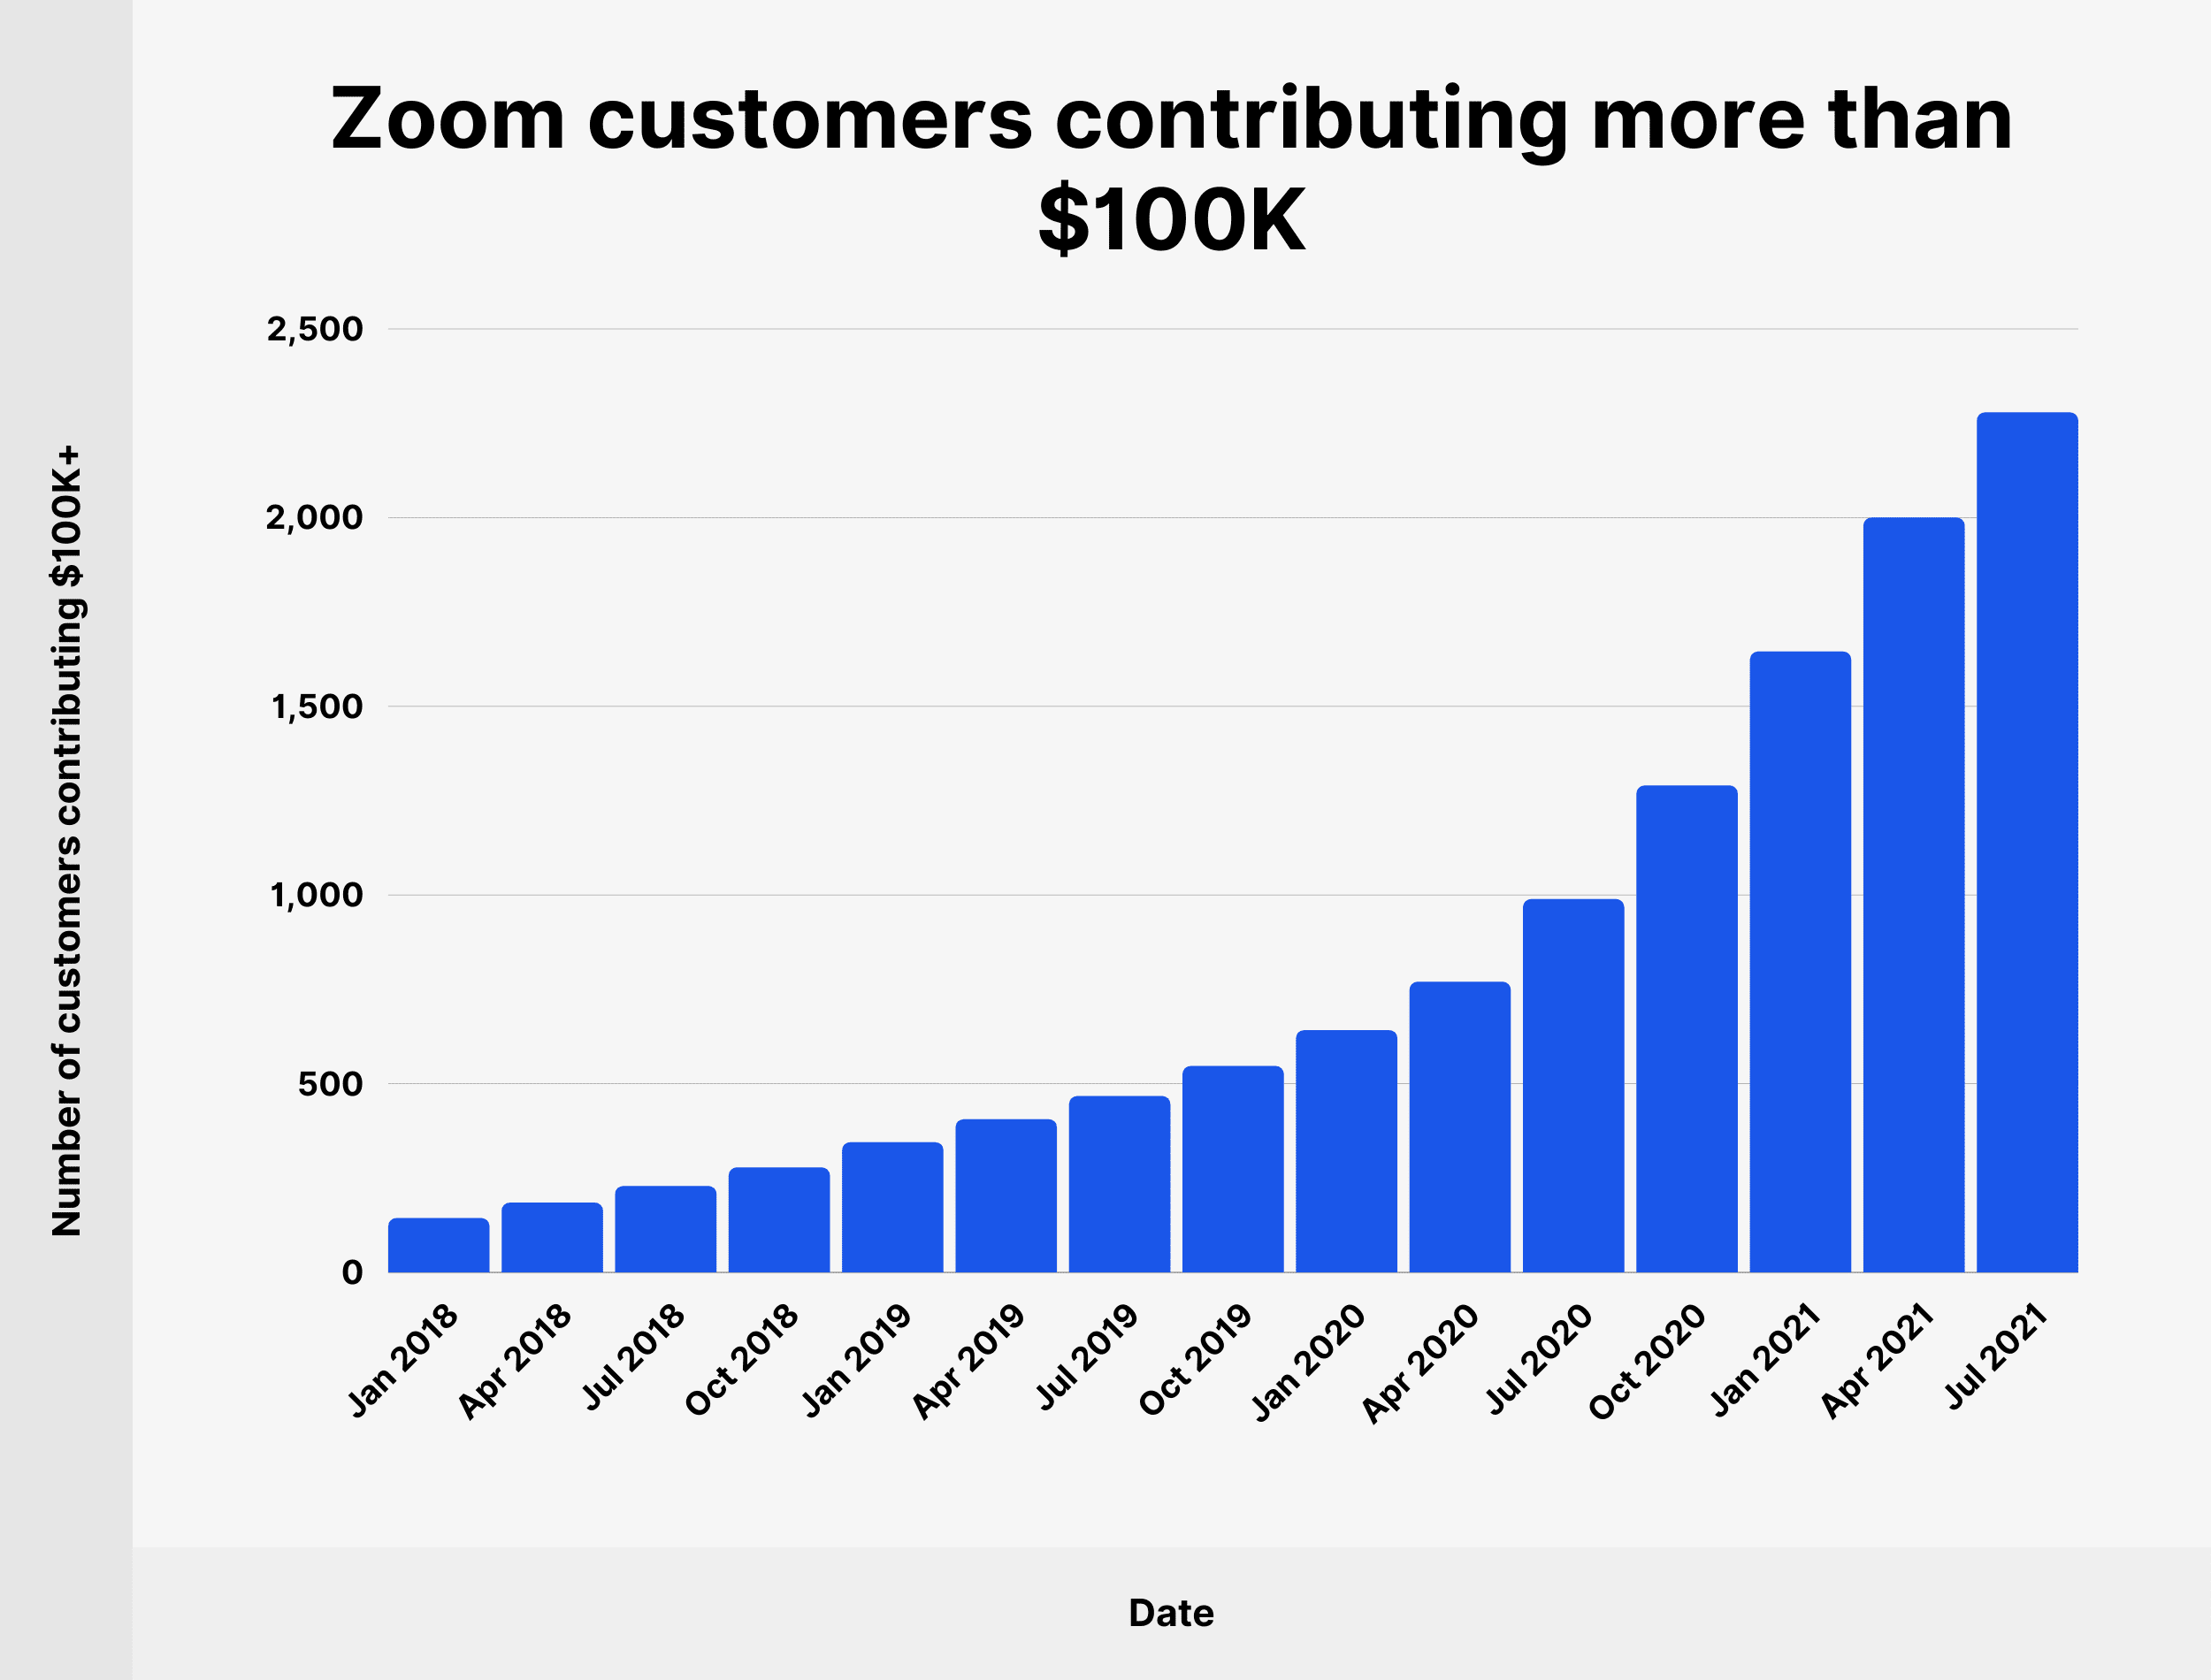 Zoom customers contributing more than $100K